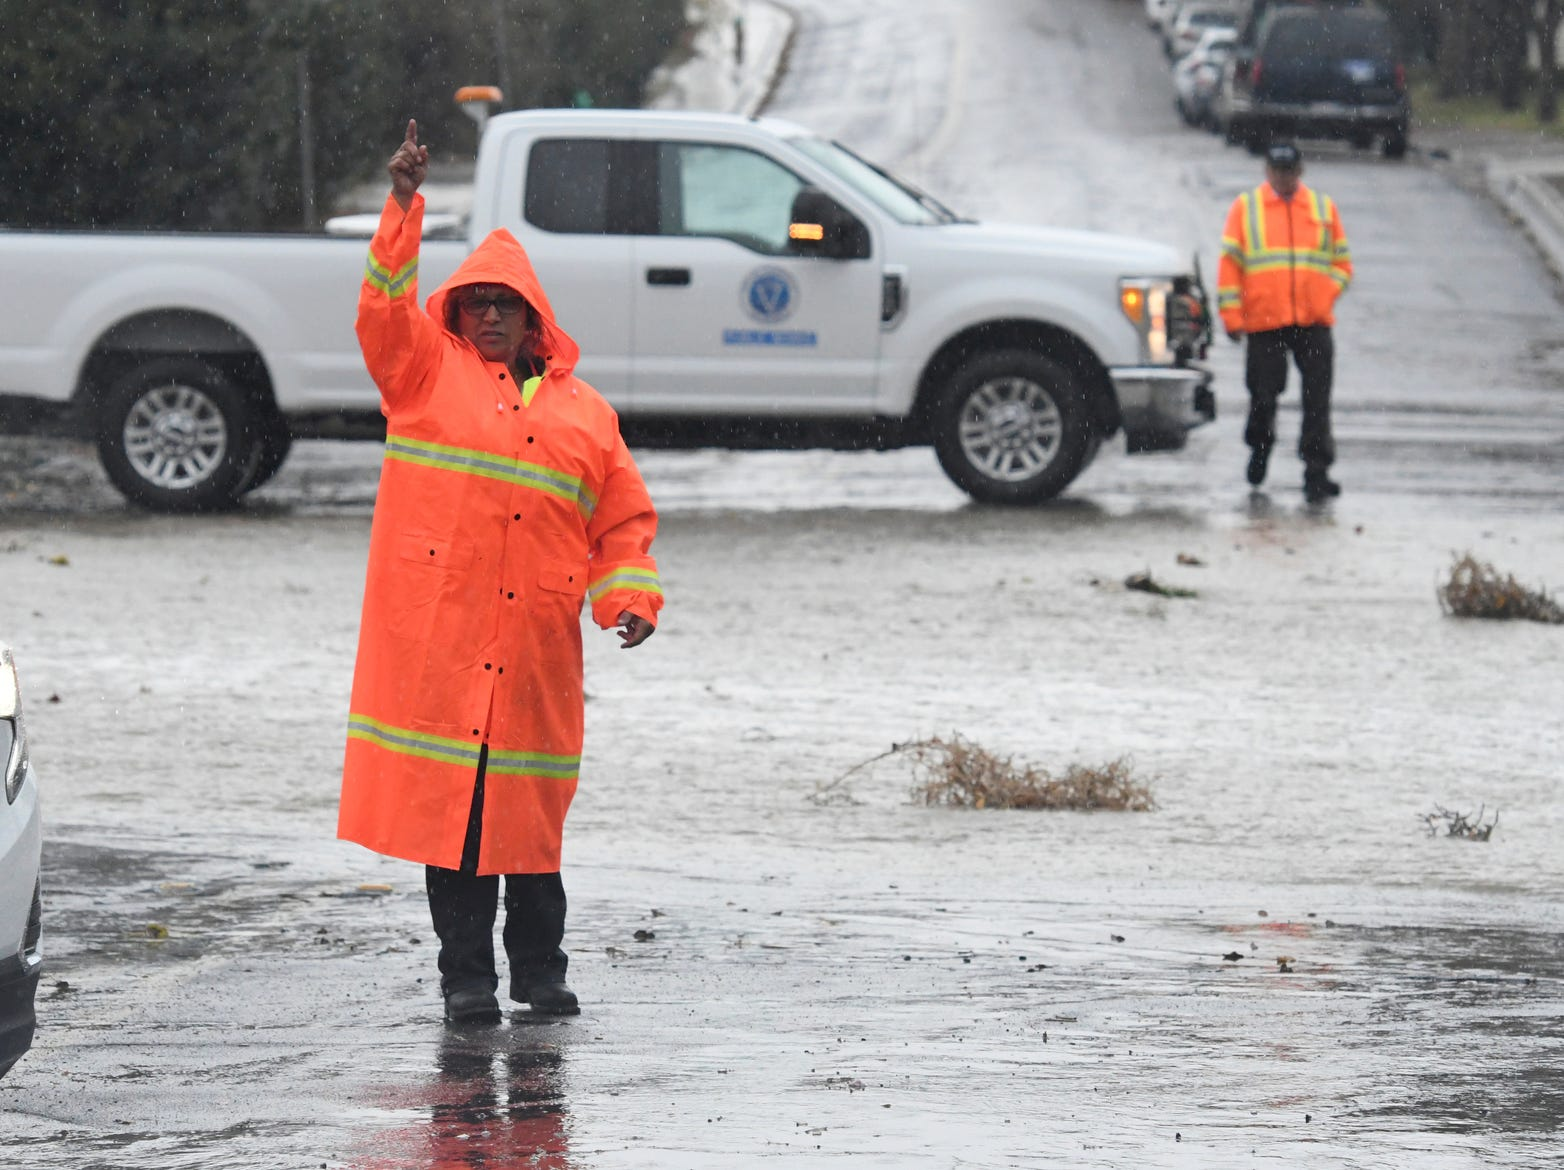 Victorville Public Works staff redirect traffic on Pebble Beach Drive as they closed the roadway due to flooding, Thursday, Dec. 6, 2018 in Victorville, Calif.